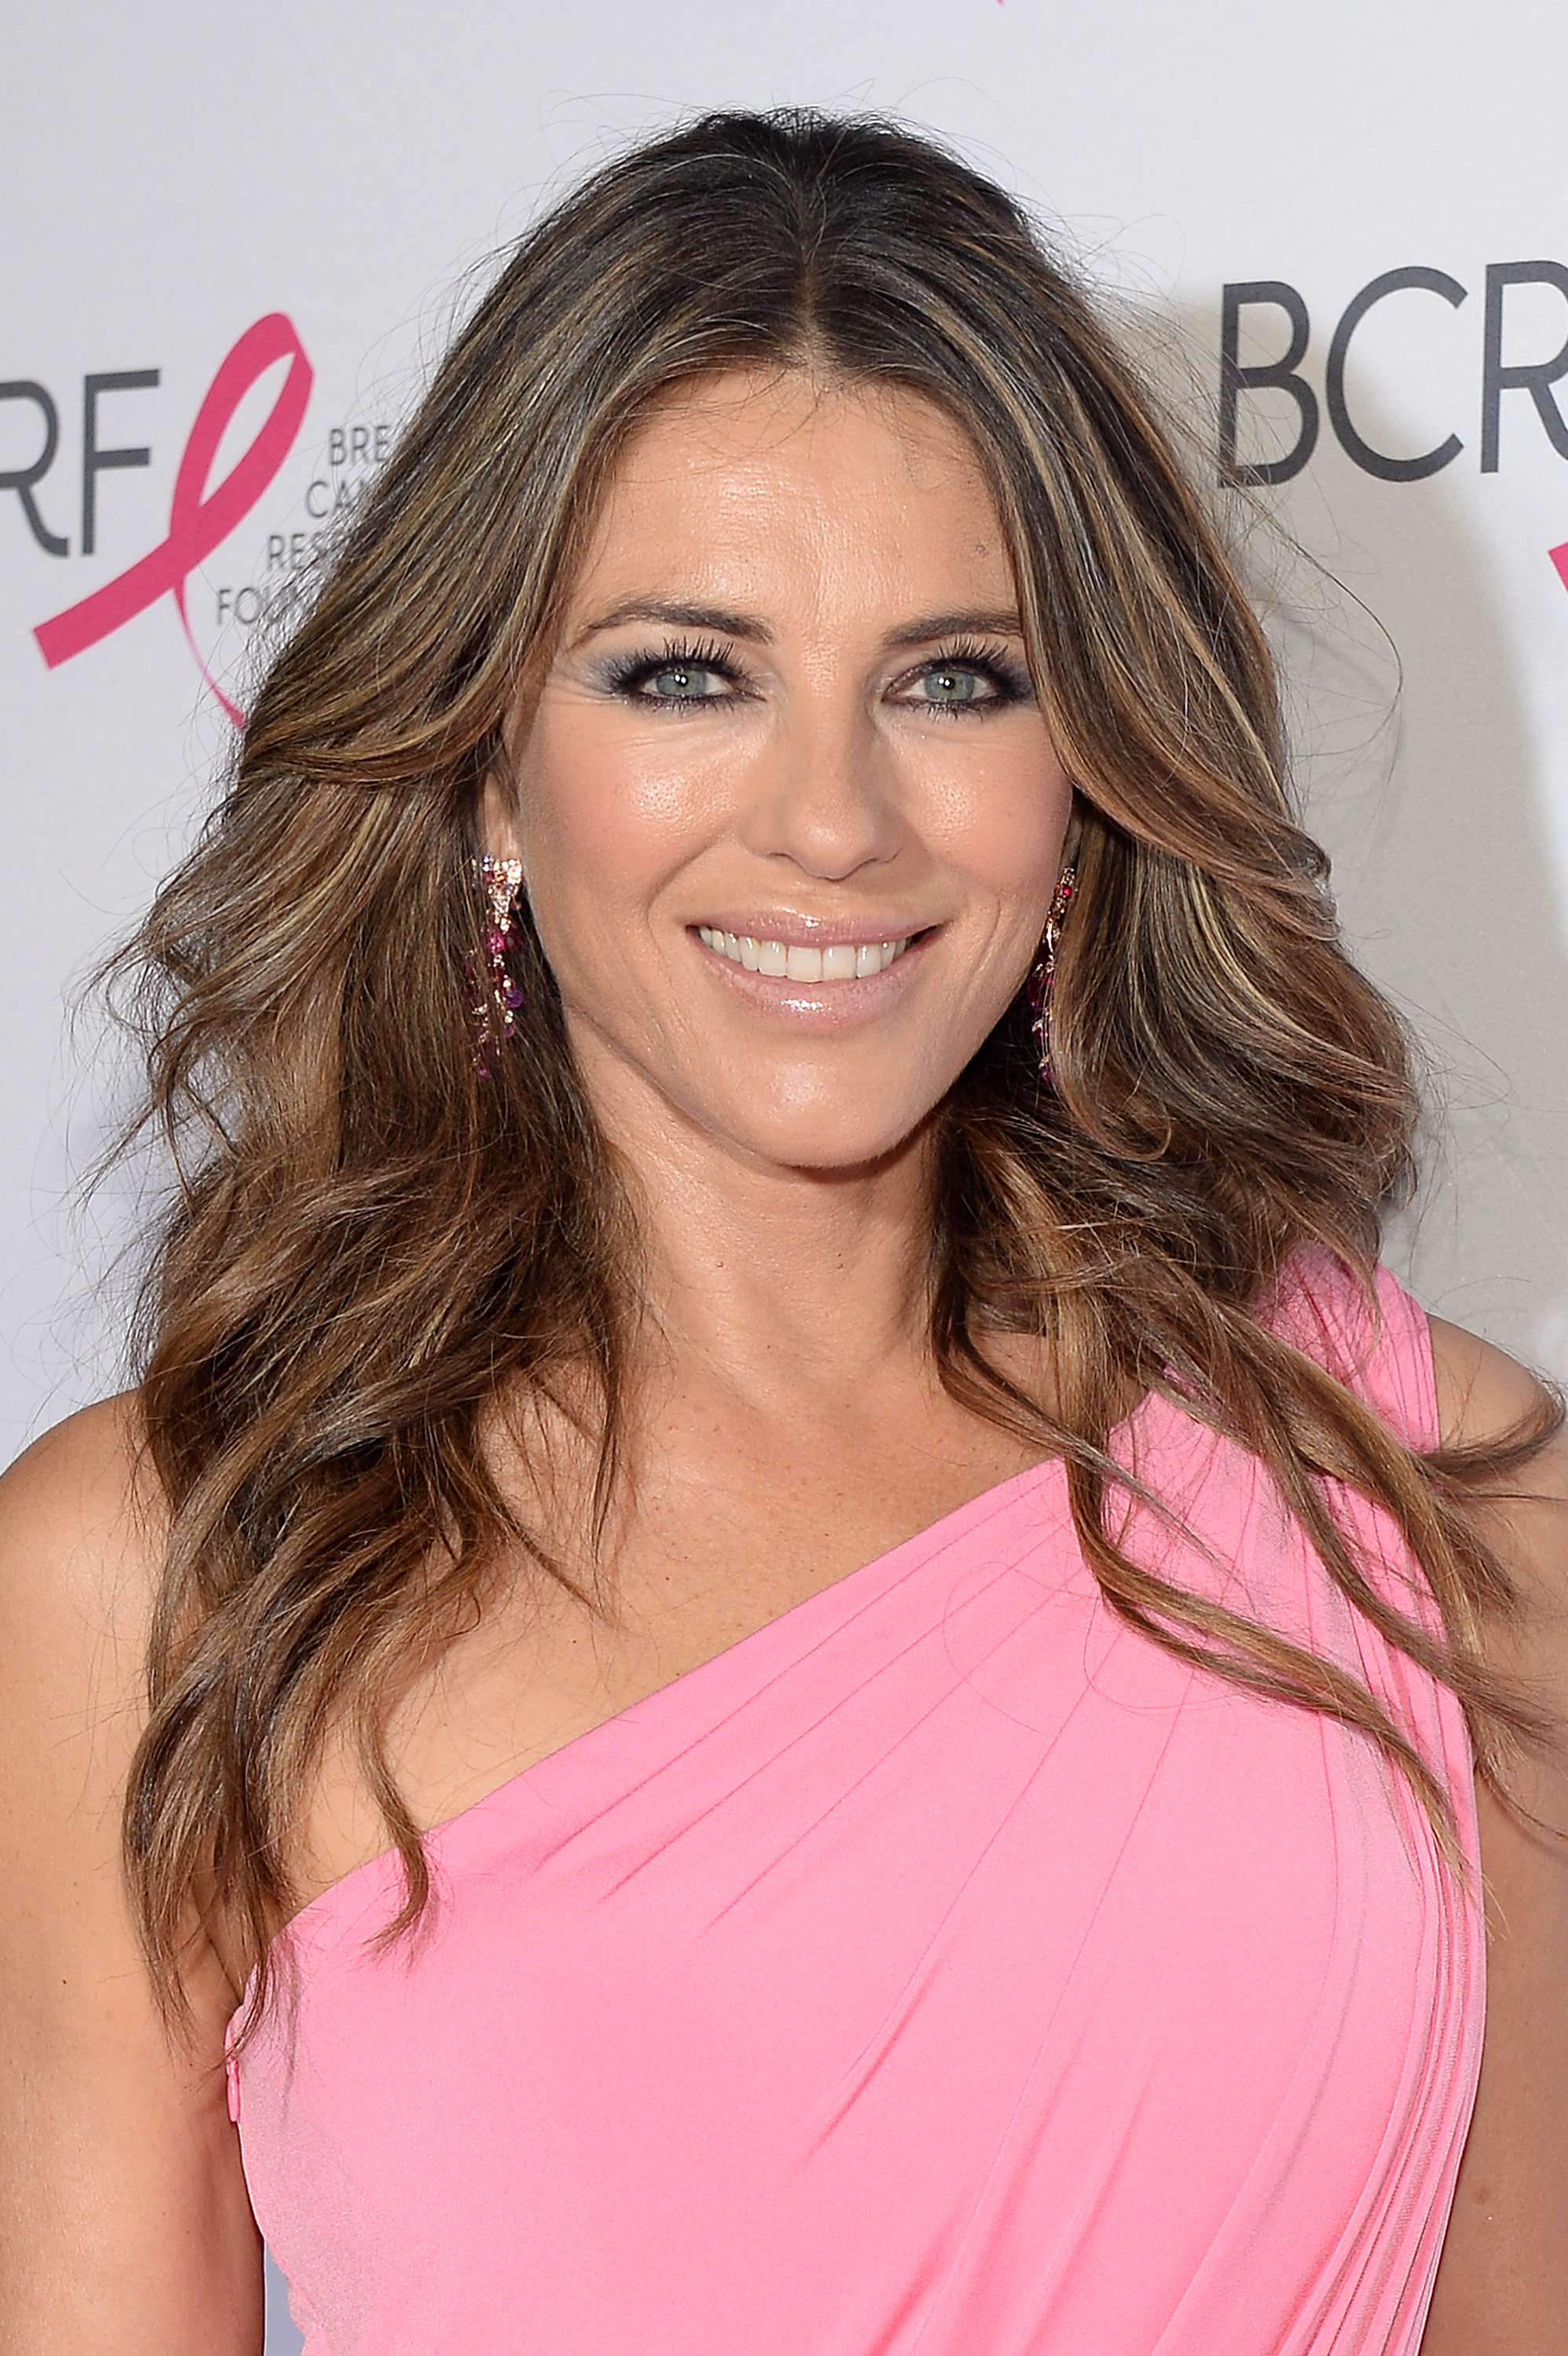 "<p>Elizabeth Hurley wears many hats -- actress, model, bikini designer -- but the role that has long been the closest to her heart is being the Global Ambassador for Estée Lauder's breast cancer campaign, BCA.</p> <p>The<em> Bedazzled</em> star has been the face of the cosmetic giant's global breast cancer charity since signing on as a brand ambassador in the mid '90s.</p> <p>""No one talked about breast cancer in those days. Cancer was a dirty word – it was whispered – as if it were contagious even to say it, my grandmother, who was fabulous and from a large, happy family, didn't talk about it, even to my mother,"" Hurley told <em><a href=""https://www.google.com.au/search?rlz=1C1CHFX_enAU747AU747&q=liz+hurley+dailymail&oq=liz+hurley+dailymail&gs_l=psy-ab.3..0i10k1j0i22i10i30k1.3058.6161.0.6374.21.16.3.0.0.0.298.2374.0j9j3.12.0.dummy_maps_web_fallback...0...1.1.64.psy-ab..7.12.1719...0j0i22i30k1j0i13k1j0i8i13i10i30k1j0i8i13i30k1.0.Shw7GNPdikw"" target=""_blank"" draggable=""false"">Daily Mail UK.</a></em><br /> <br /> ""We found out later she'd had a double mastectomy but we didn't know when she had it; we weren't there for her. Now survival rates are higher and there are better treatments. We've done a good job of spreading awareness. A world that doesn't have breast cancer – or one where you don't die of it – has to be the aim.""<br /> <br /> With October being Breast Cancer Awareness Month and the 25th anniversary of the campaign (it launched in 1992 by Evelyn H. Lauder), Hurley kick-started the celebrations by surprising passengers on a flight from London to New York and passing out pink ribbons over the weekend.</p> <p>Hurley's sky-high deed is the first of many events the actress will participate in to support the Breast Cancer Research Foundation.</p> <p>We here at HoneyStyle have decided to also think pink this October to raise awareness for Breast cancer. Click through to see our favourite beauty products that are donating a portion of their sales to the National Breast Cancer Foundation.</p>"